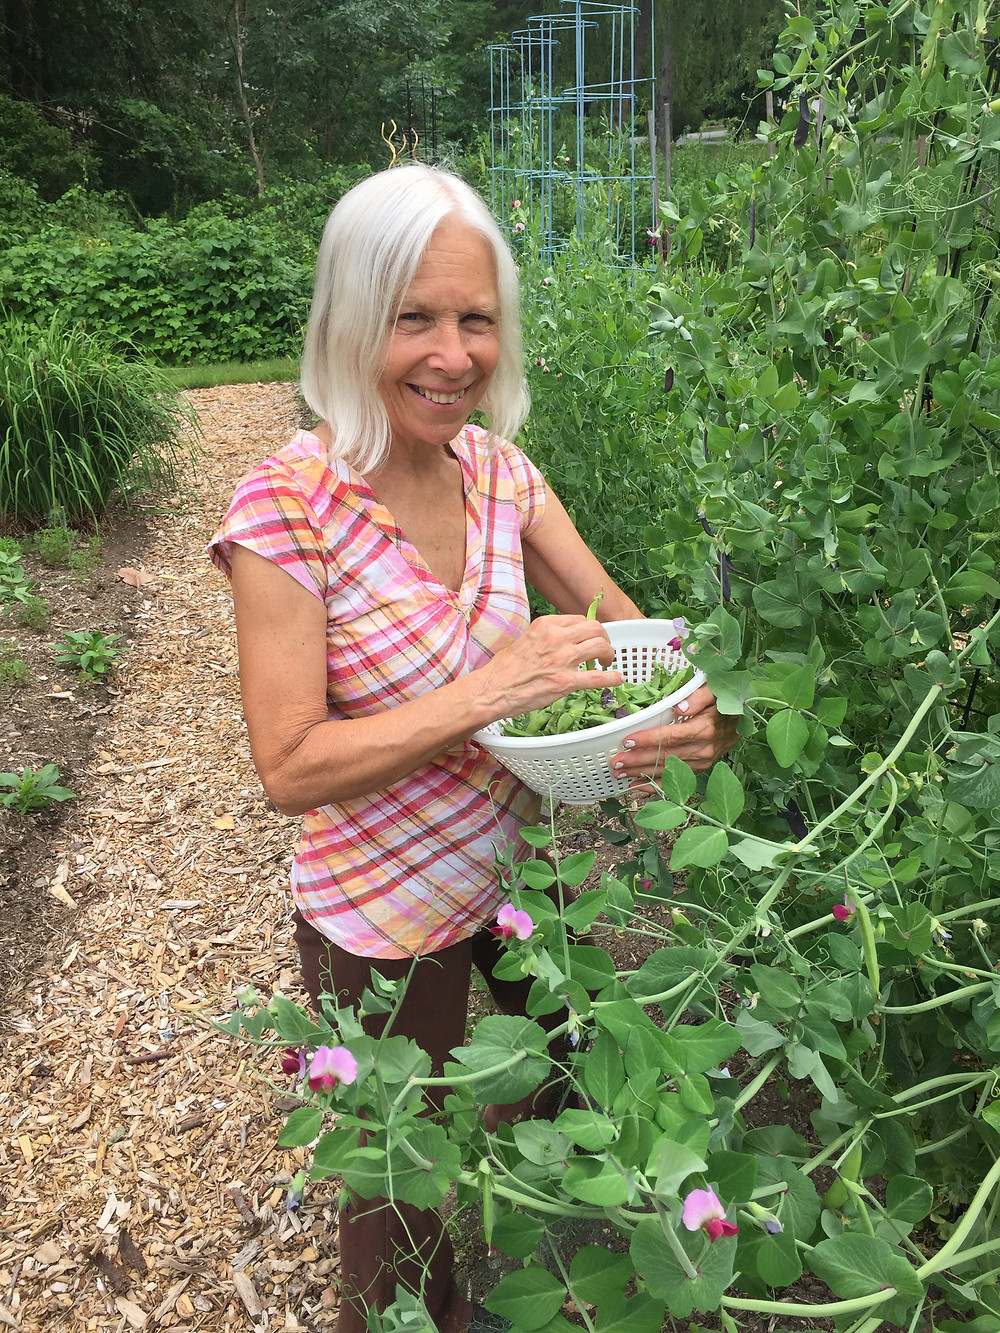 Reaping the harvest of snow peas